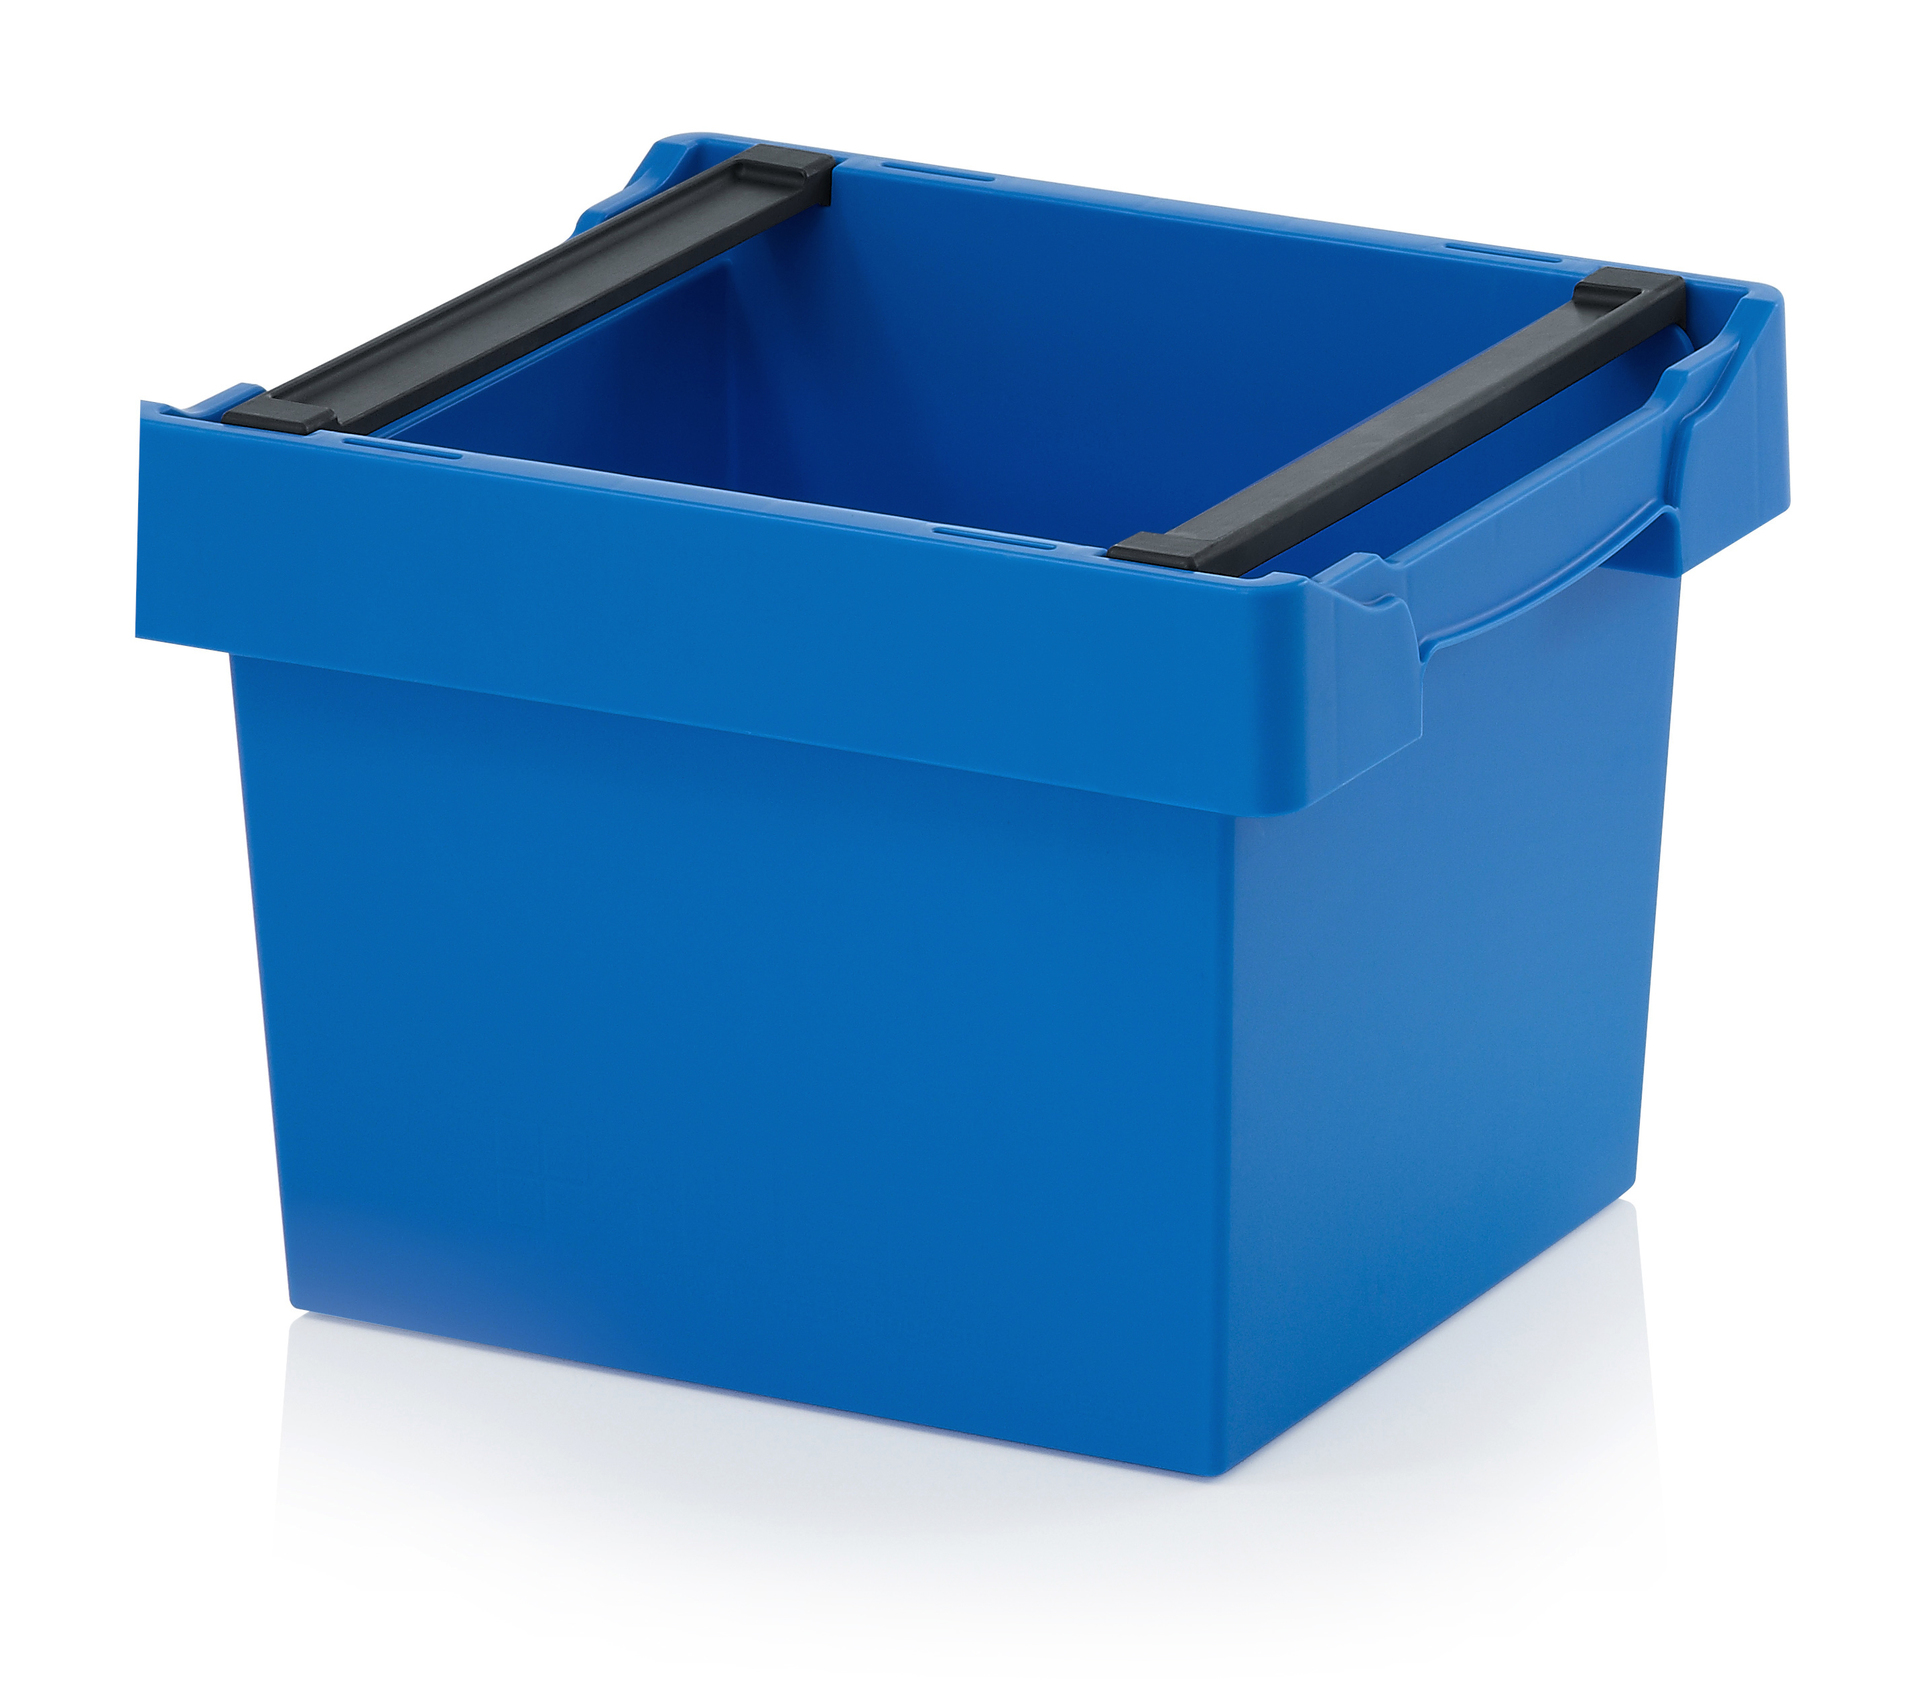 RC4270F_2 Reusable Containers - Plastic Mouldings Northern